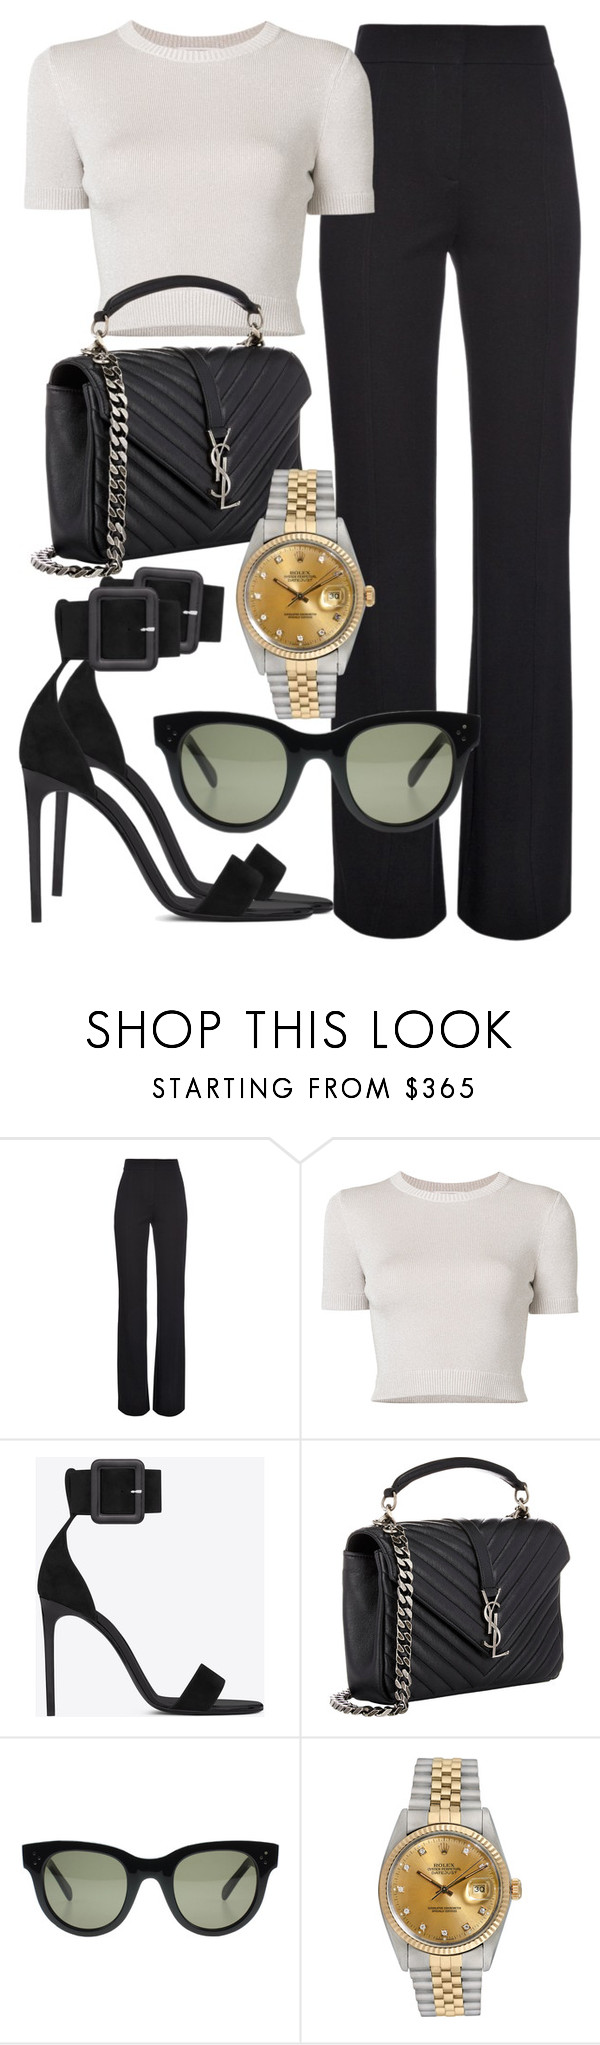 Sem título in style pinterest fashion outfits and